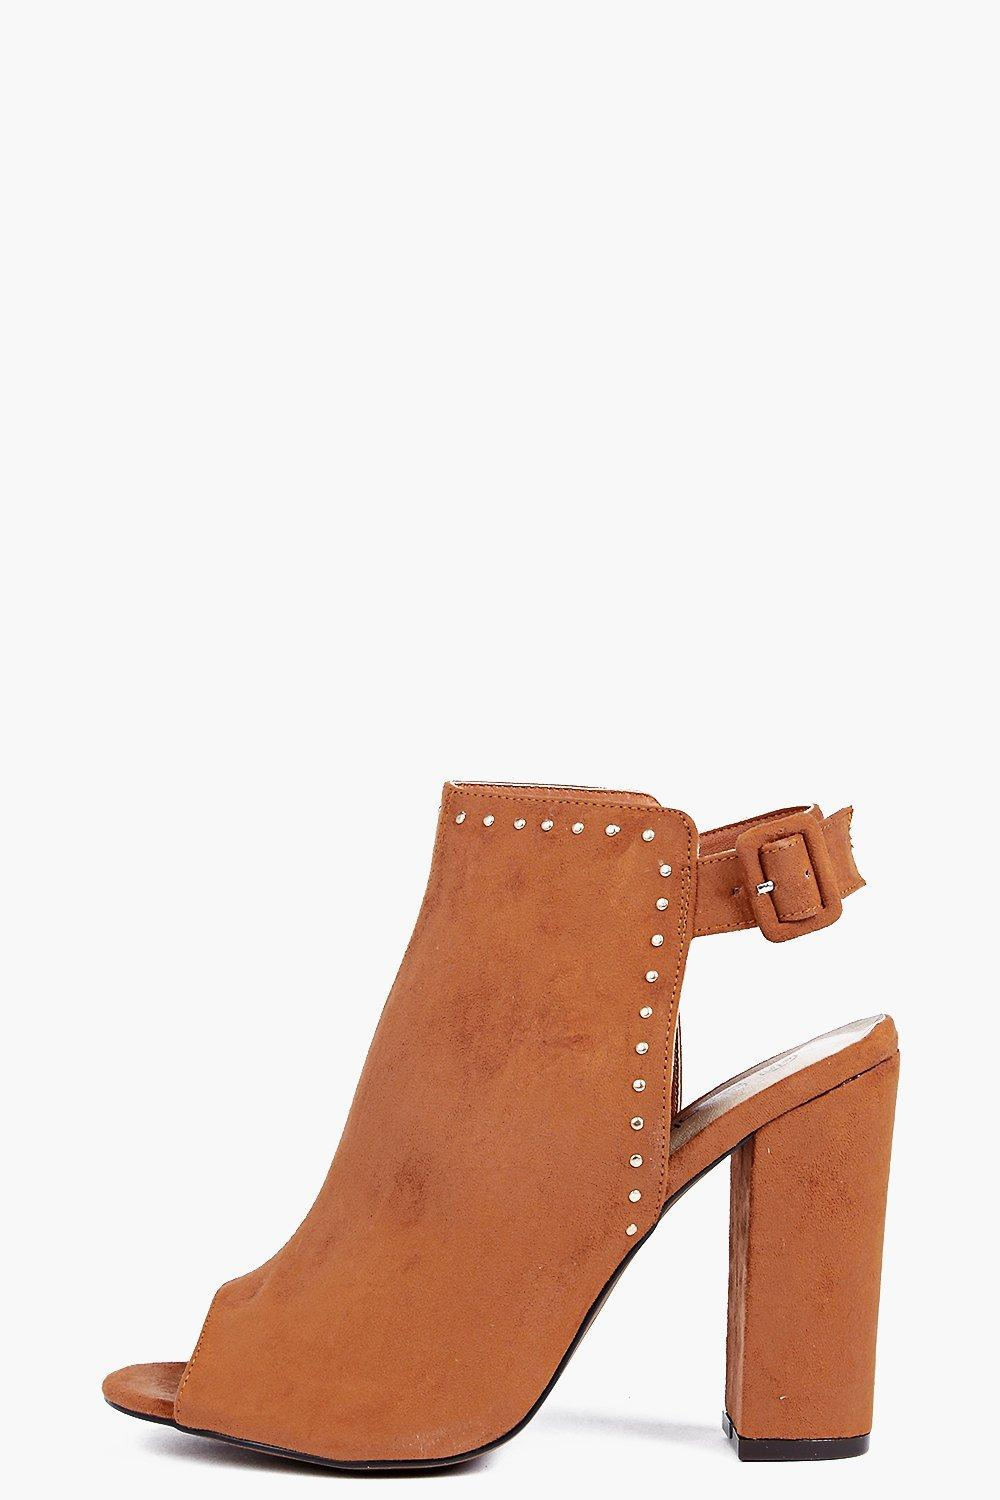 Jennie Pinstud Peeptoe Shoeboot